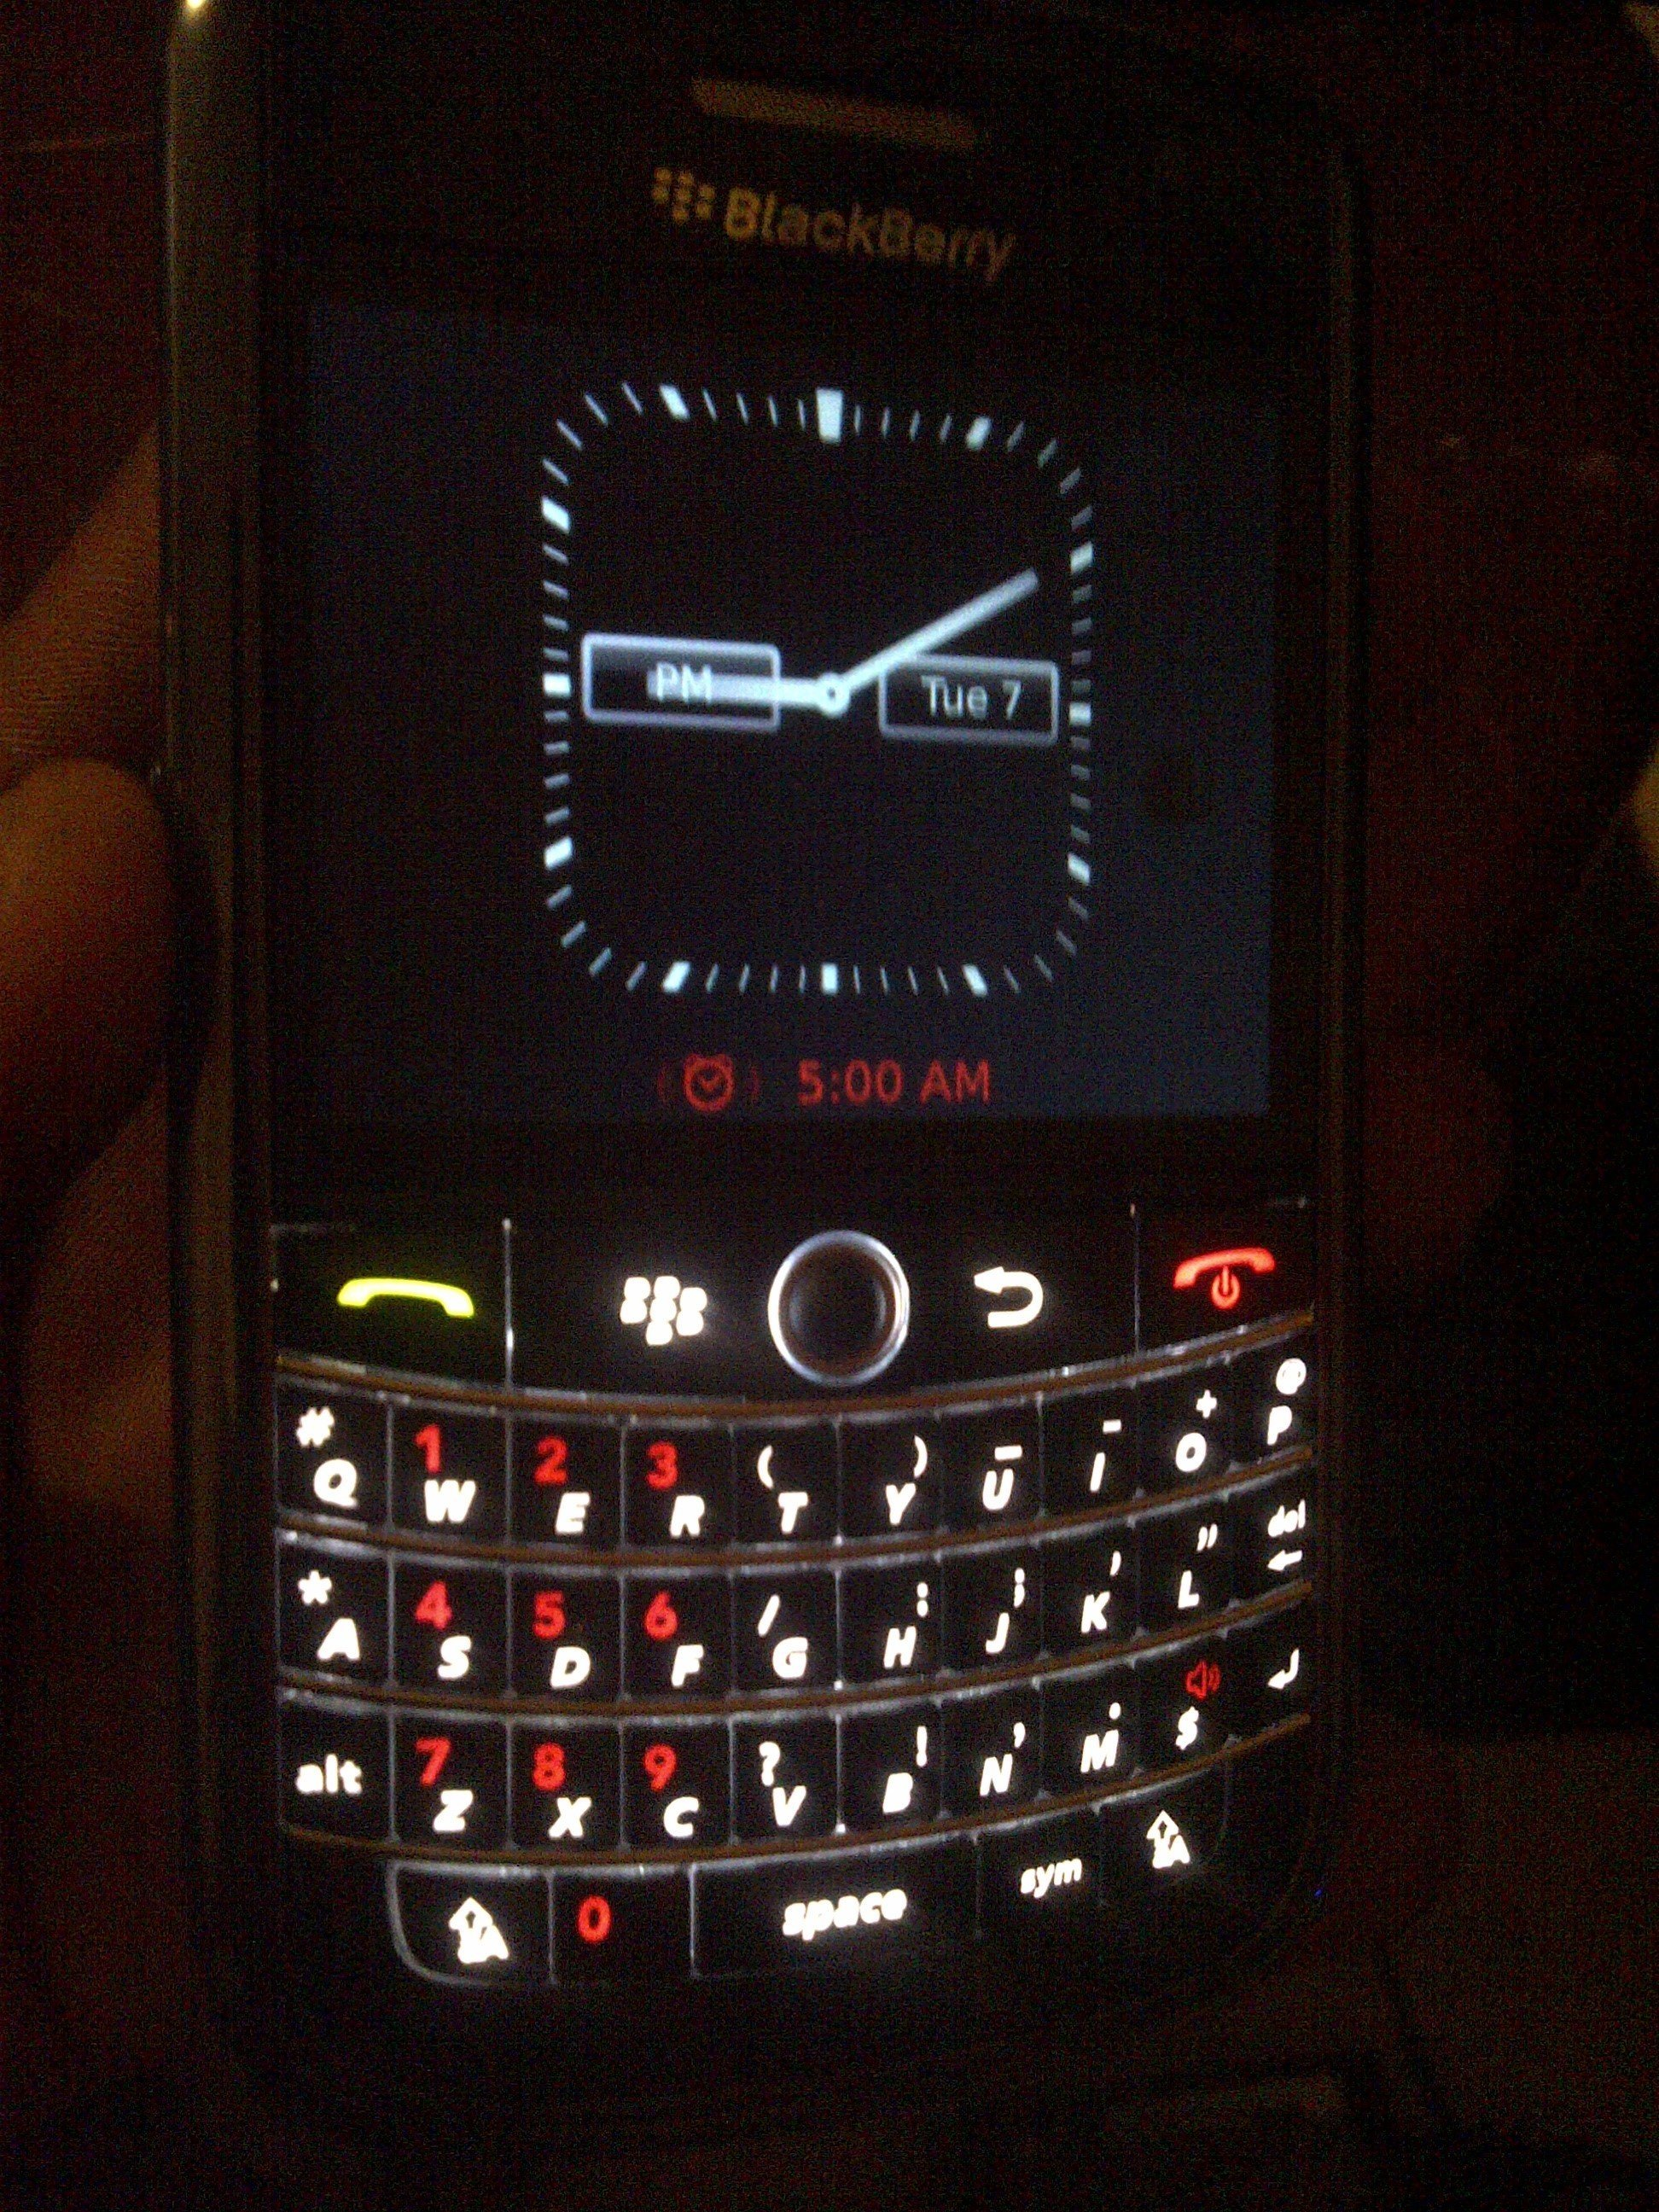 BlackBerry Home Screen